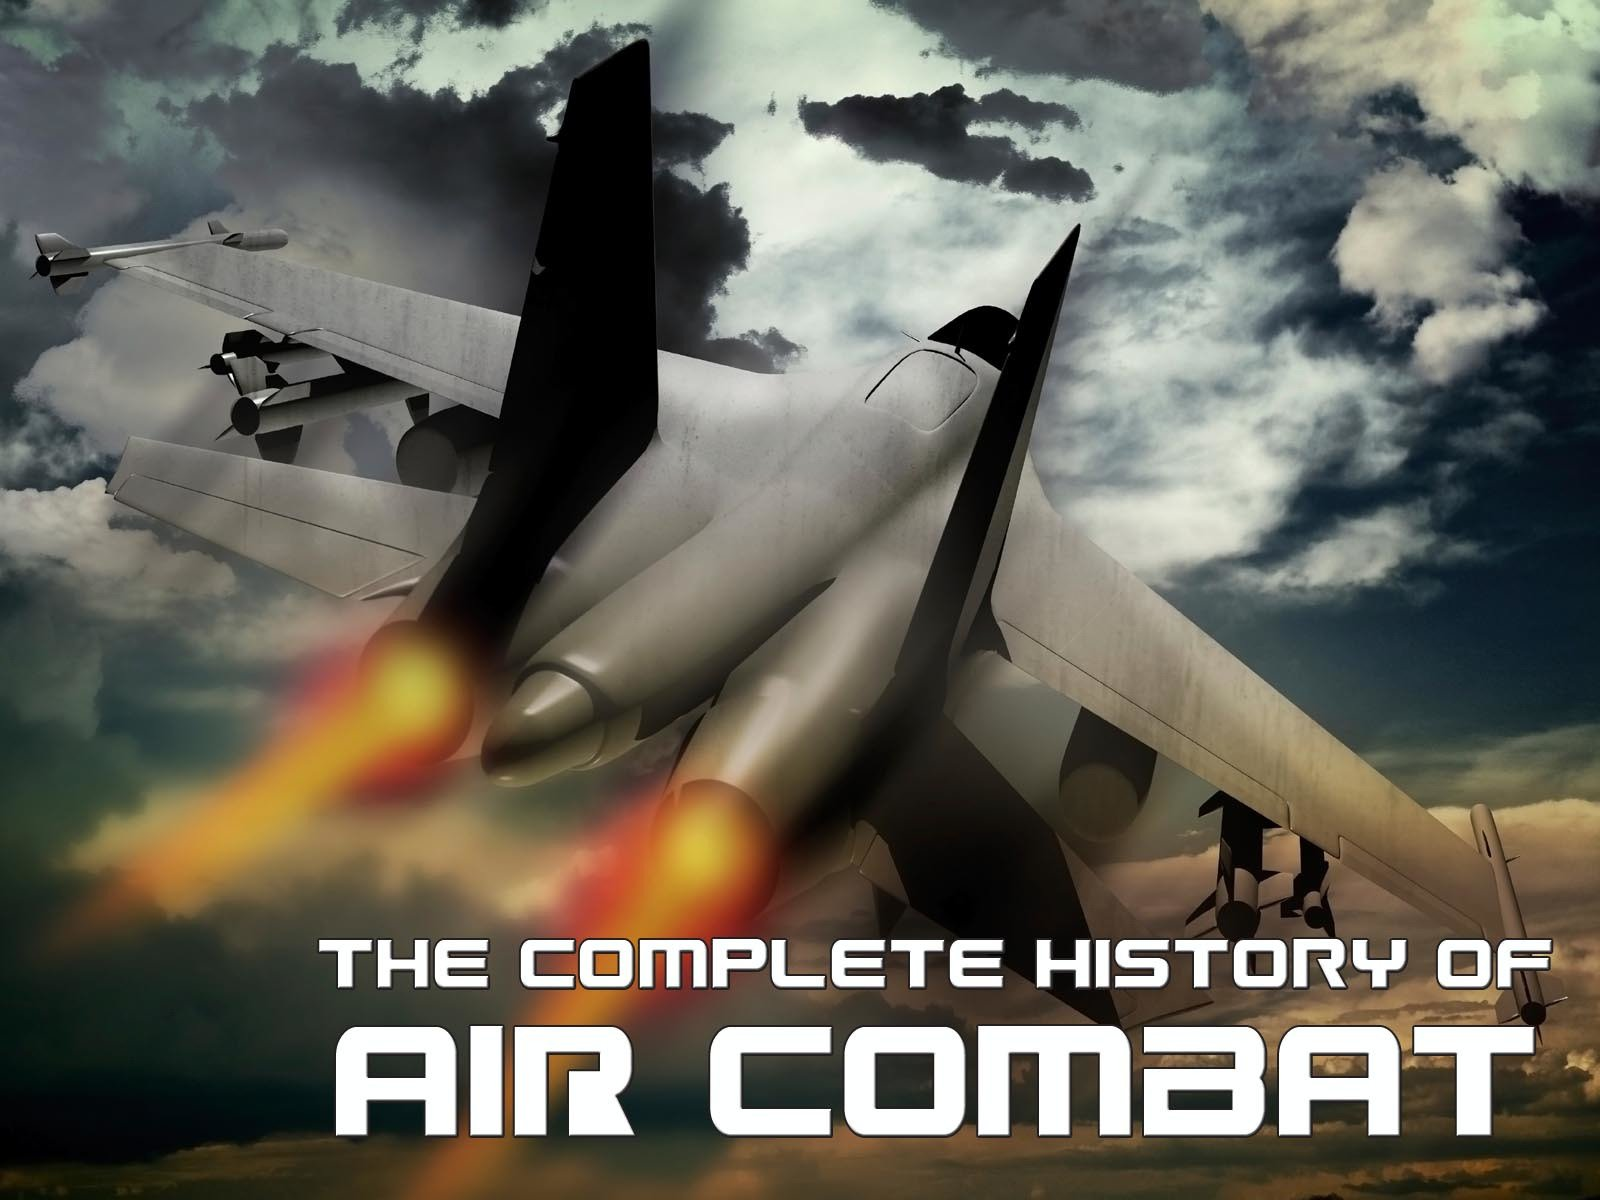 The Complete History of Air Combat - Season 1